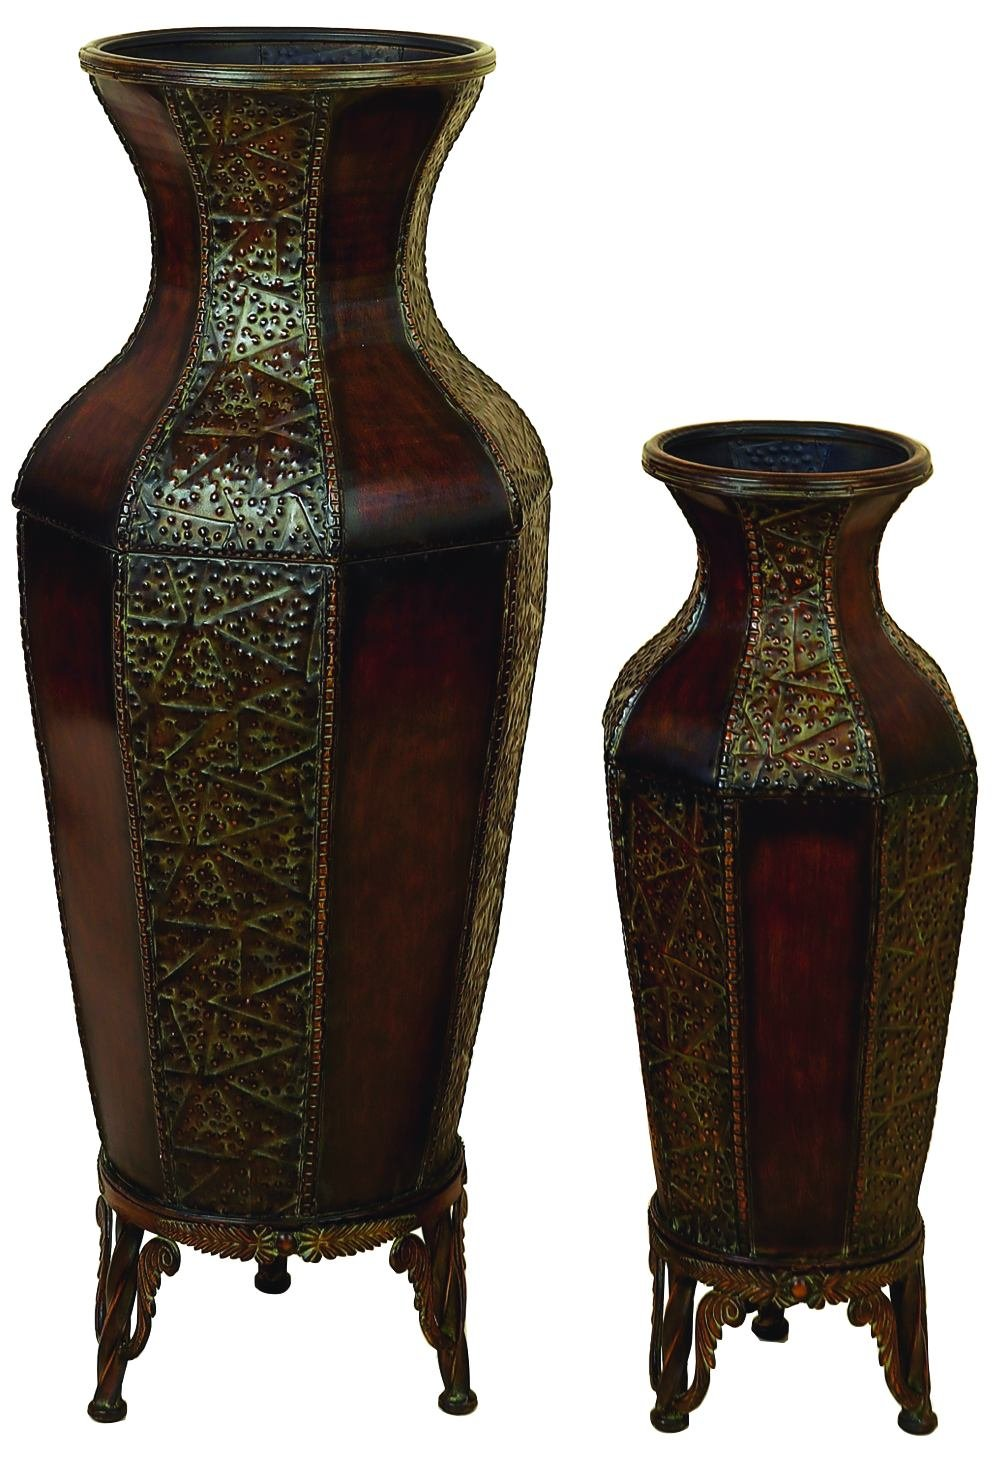 brown vase floor bamboo home pjquyl in with magnolias floral dp crafts diy green kit plantation kitchen com tall amazon